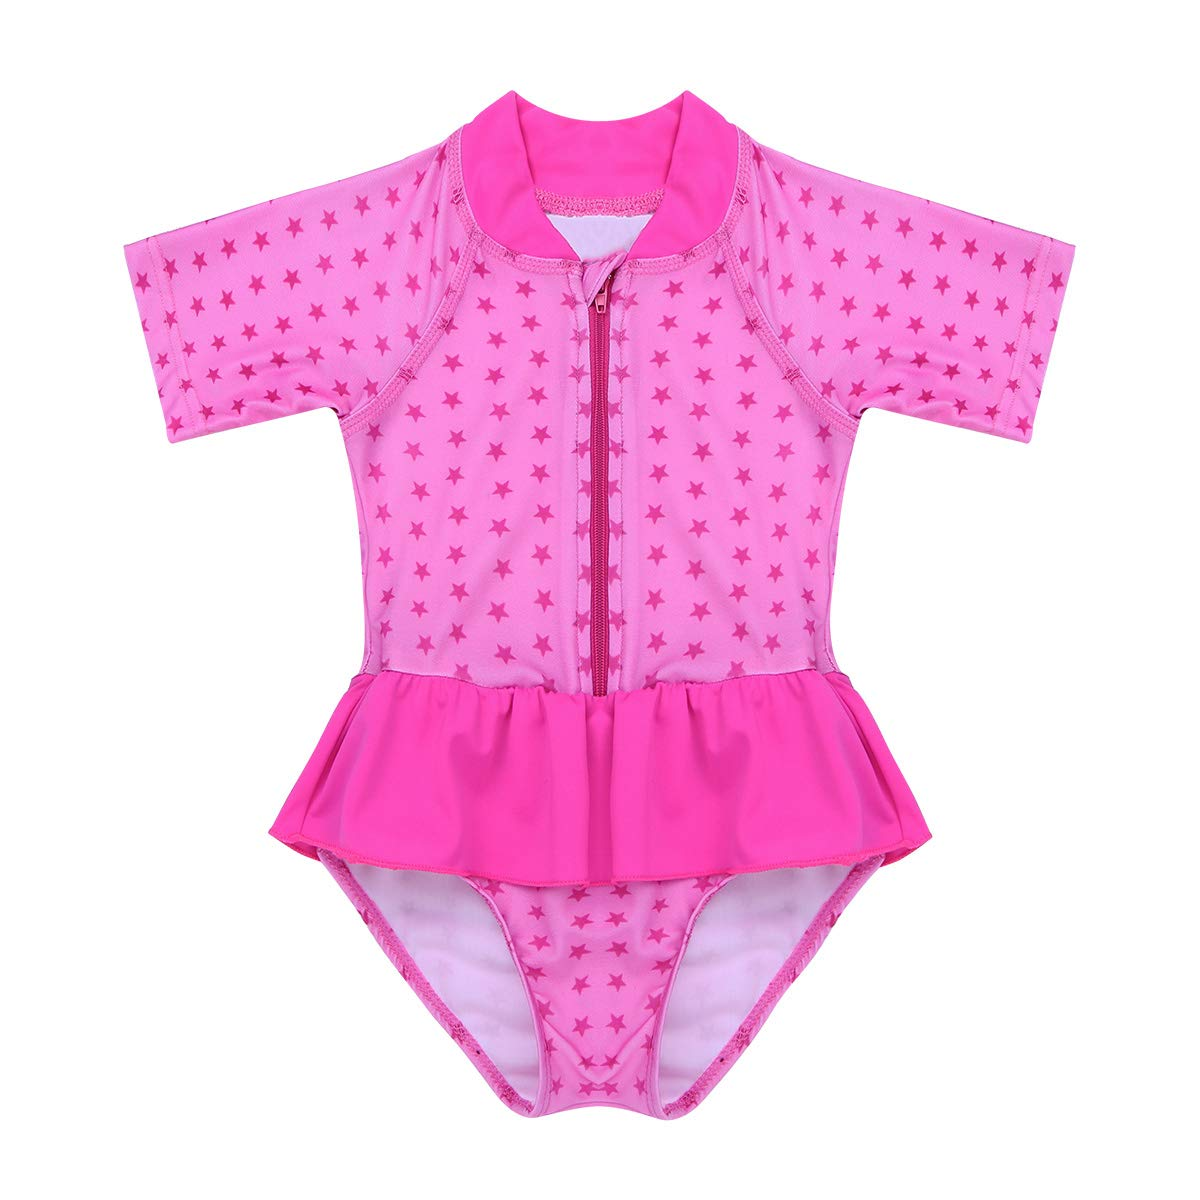 TiaoBug Infant Baby Girls Long Sleeves Floral Swimsuit